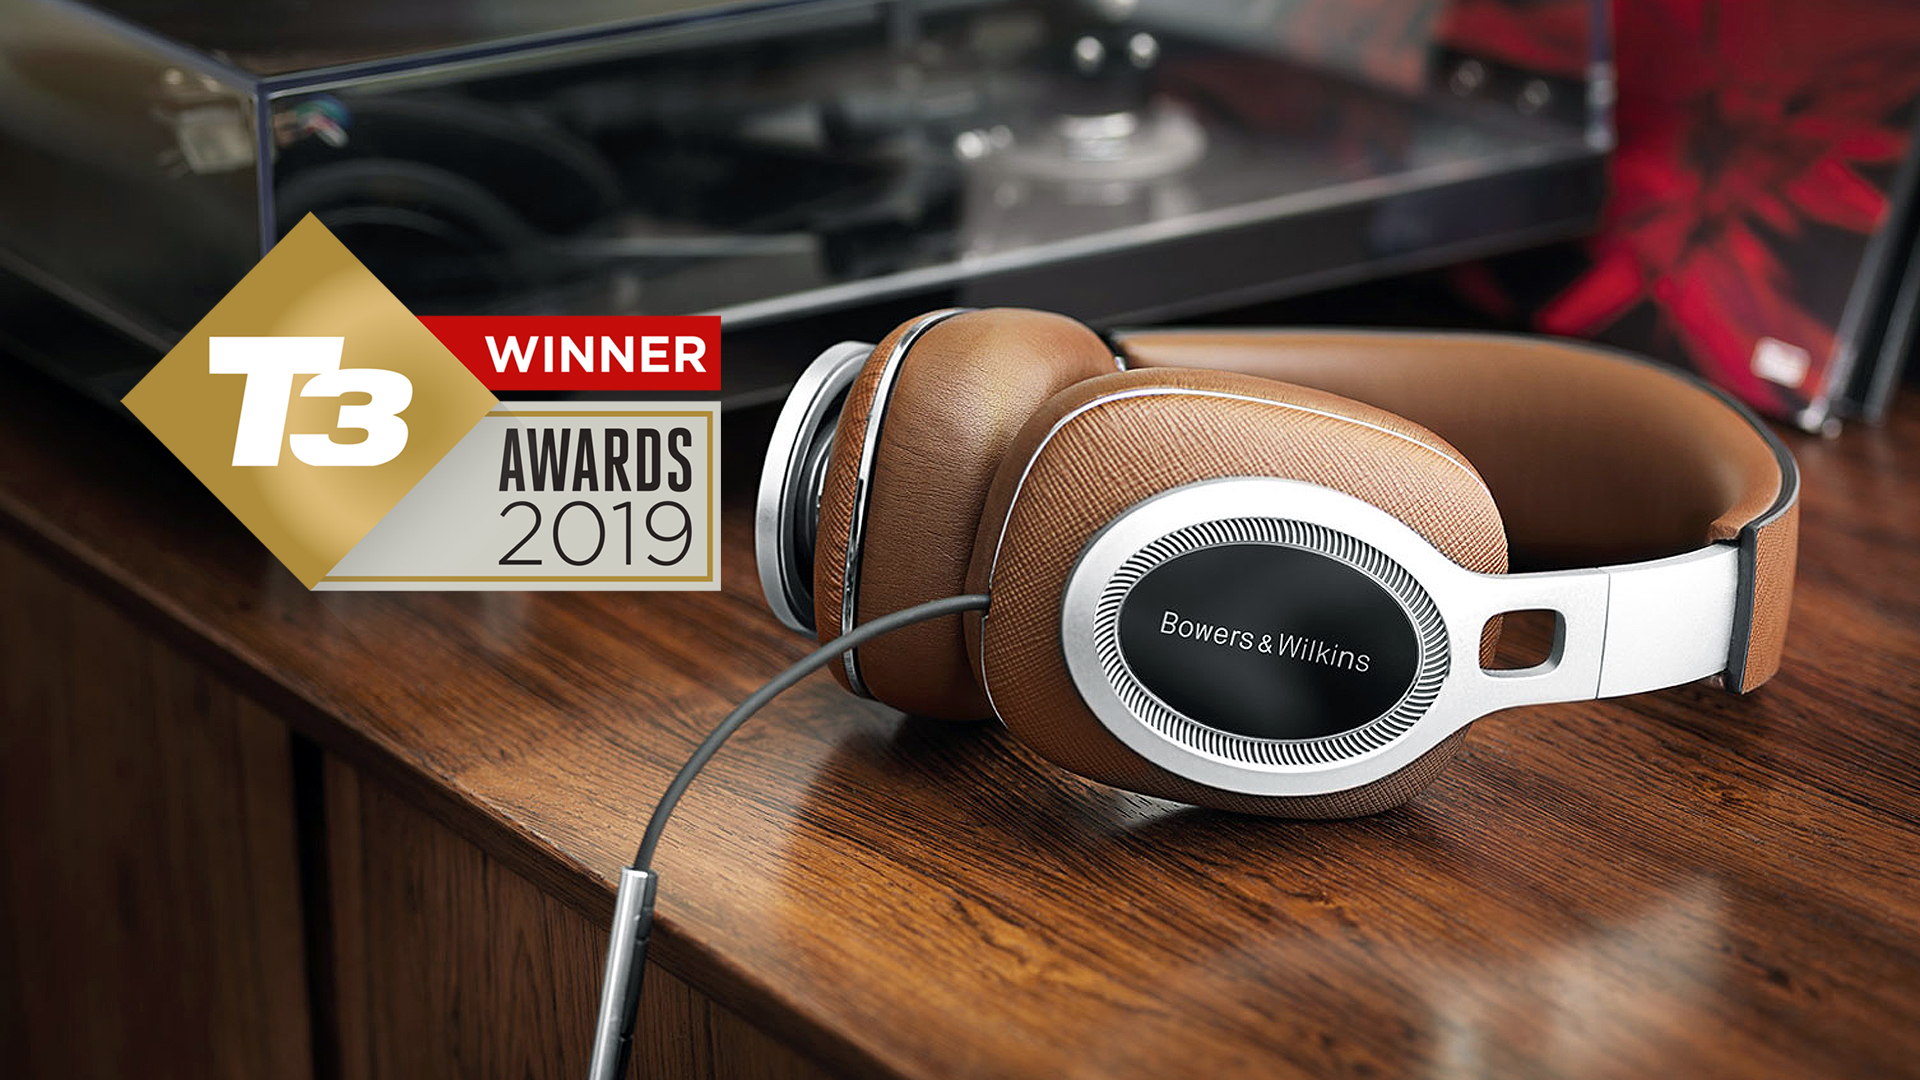 hight resolution of best over ear headphones 2019 get wired for sound with the best audio quality t3